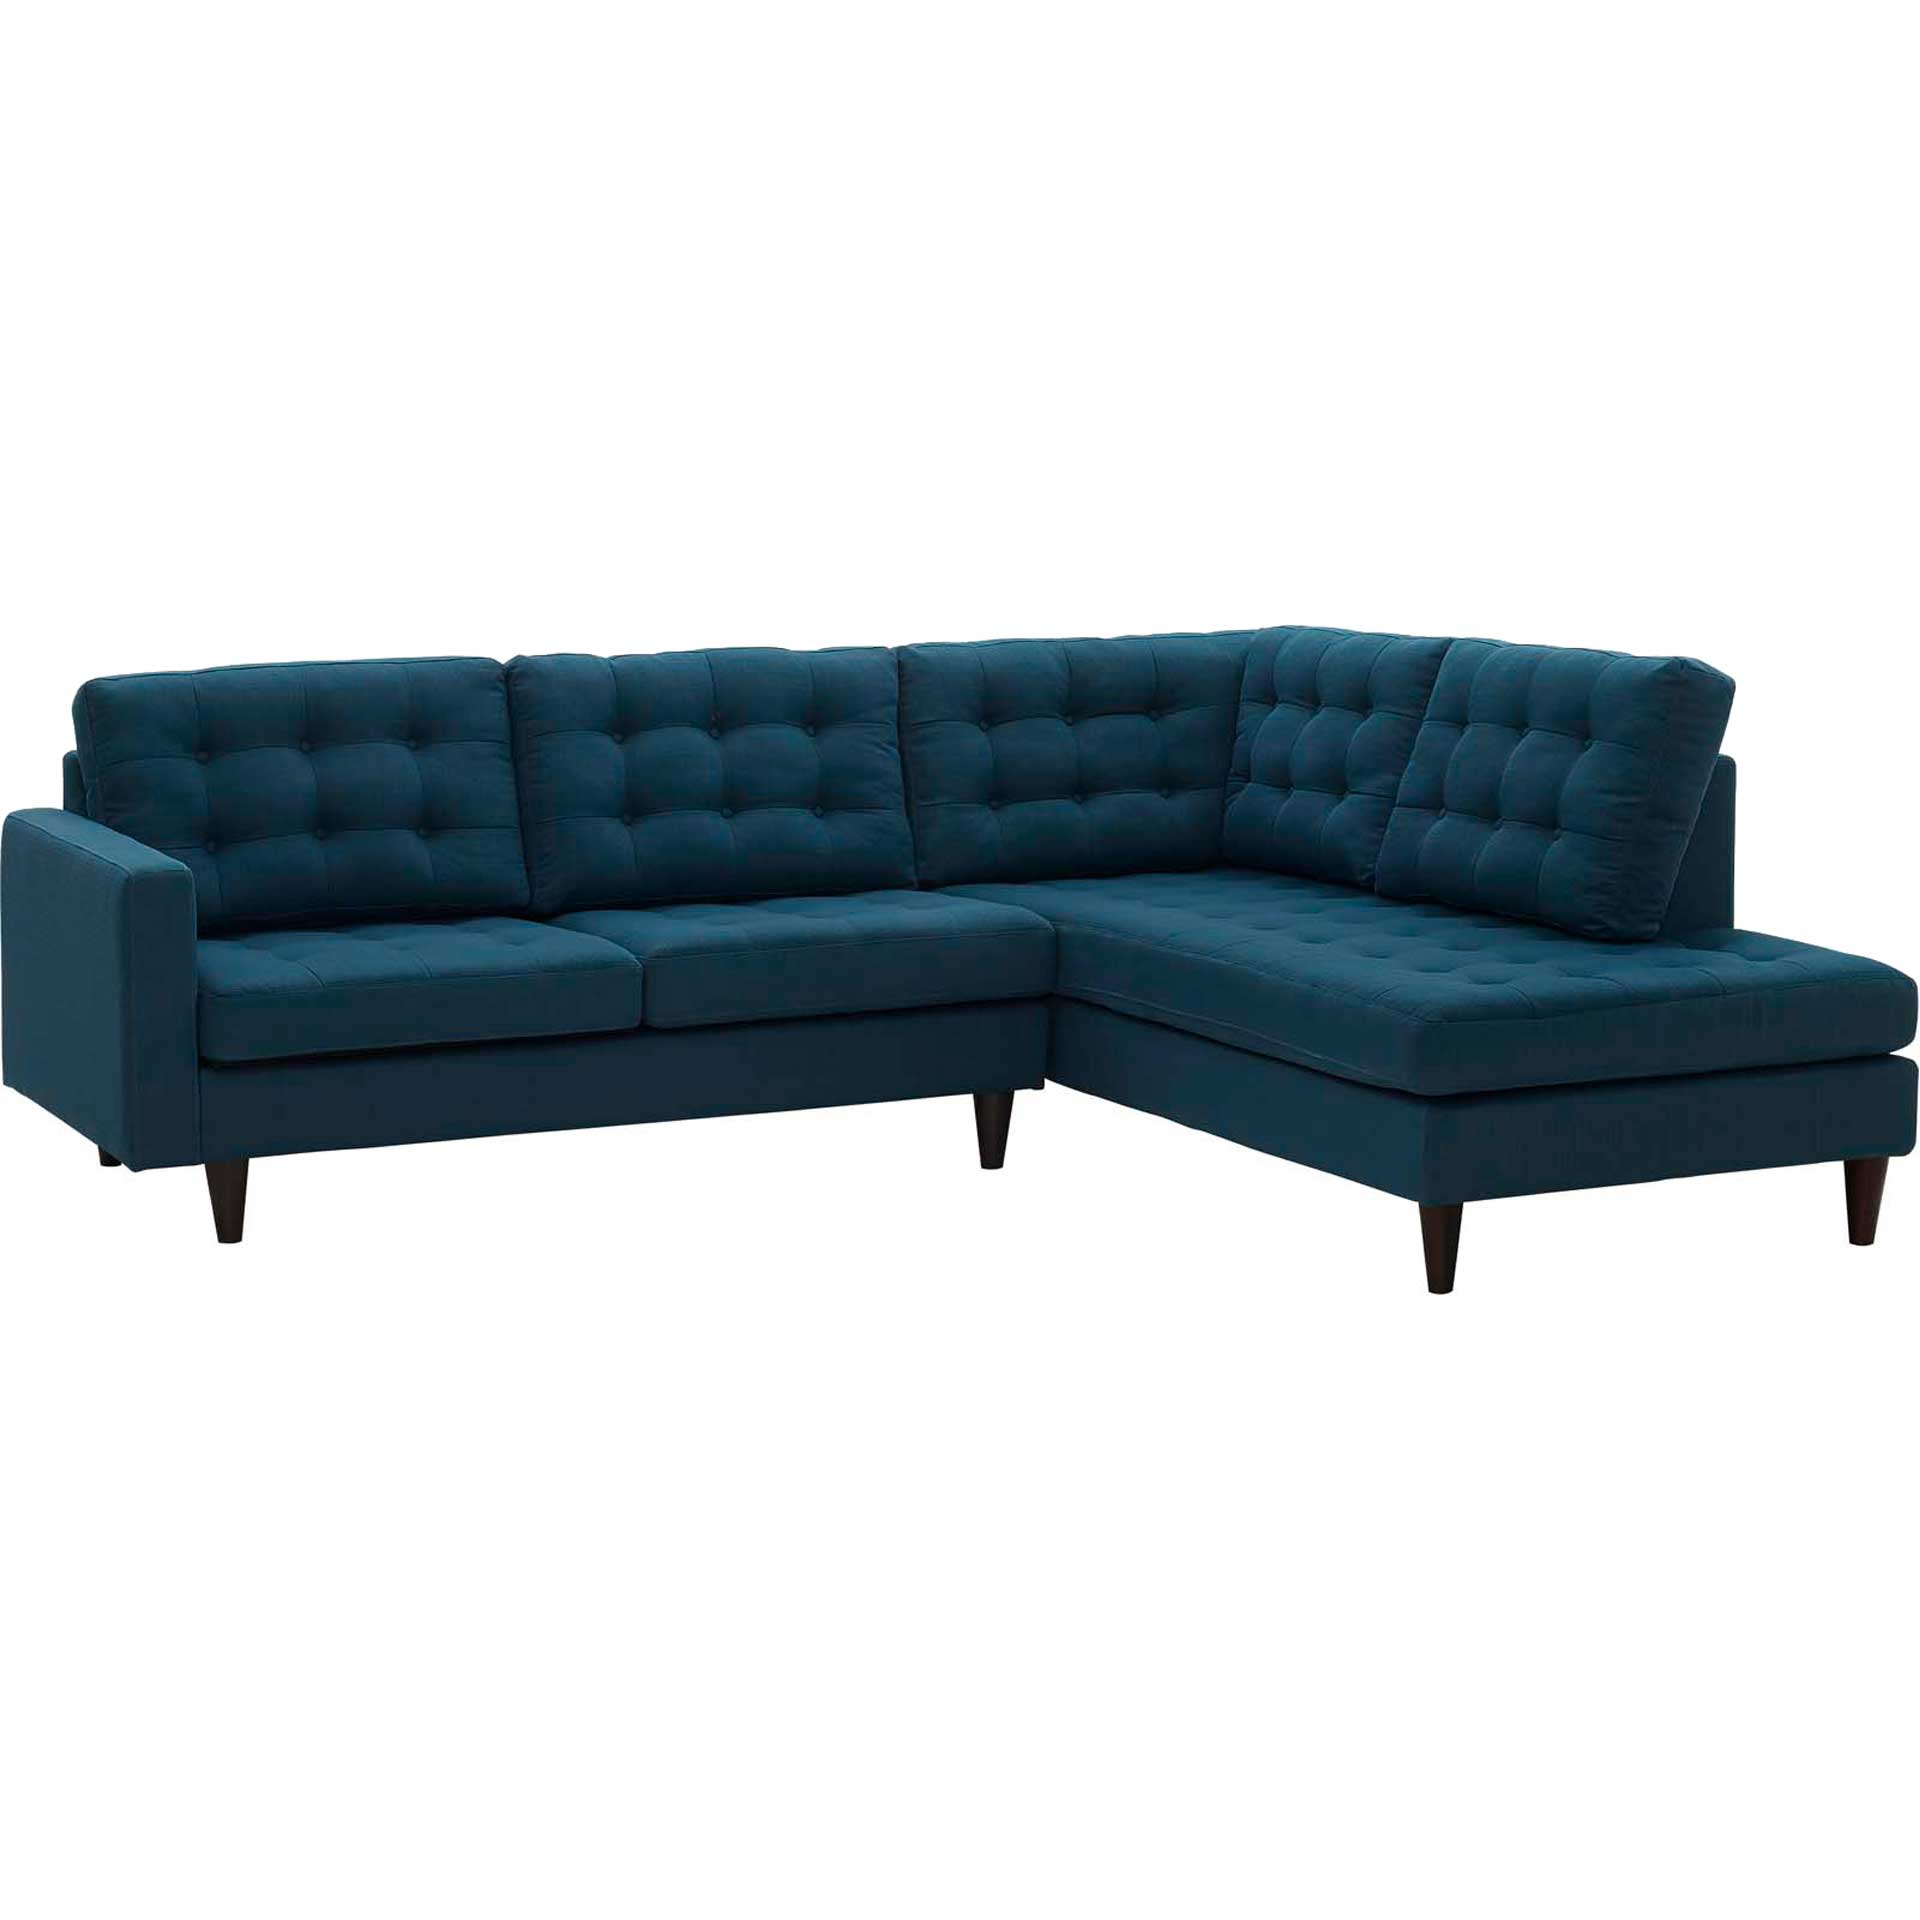 Era Upholstered Fabric Bumper Sectional Azure